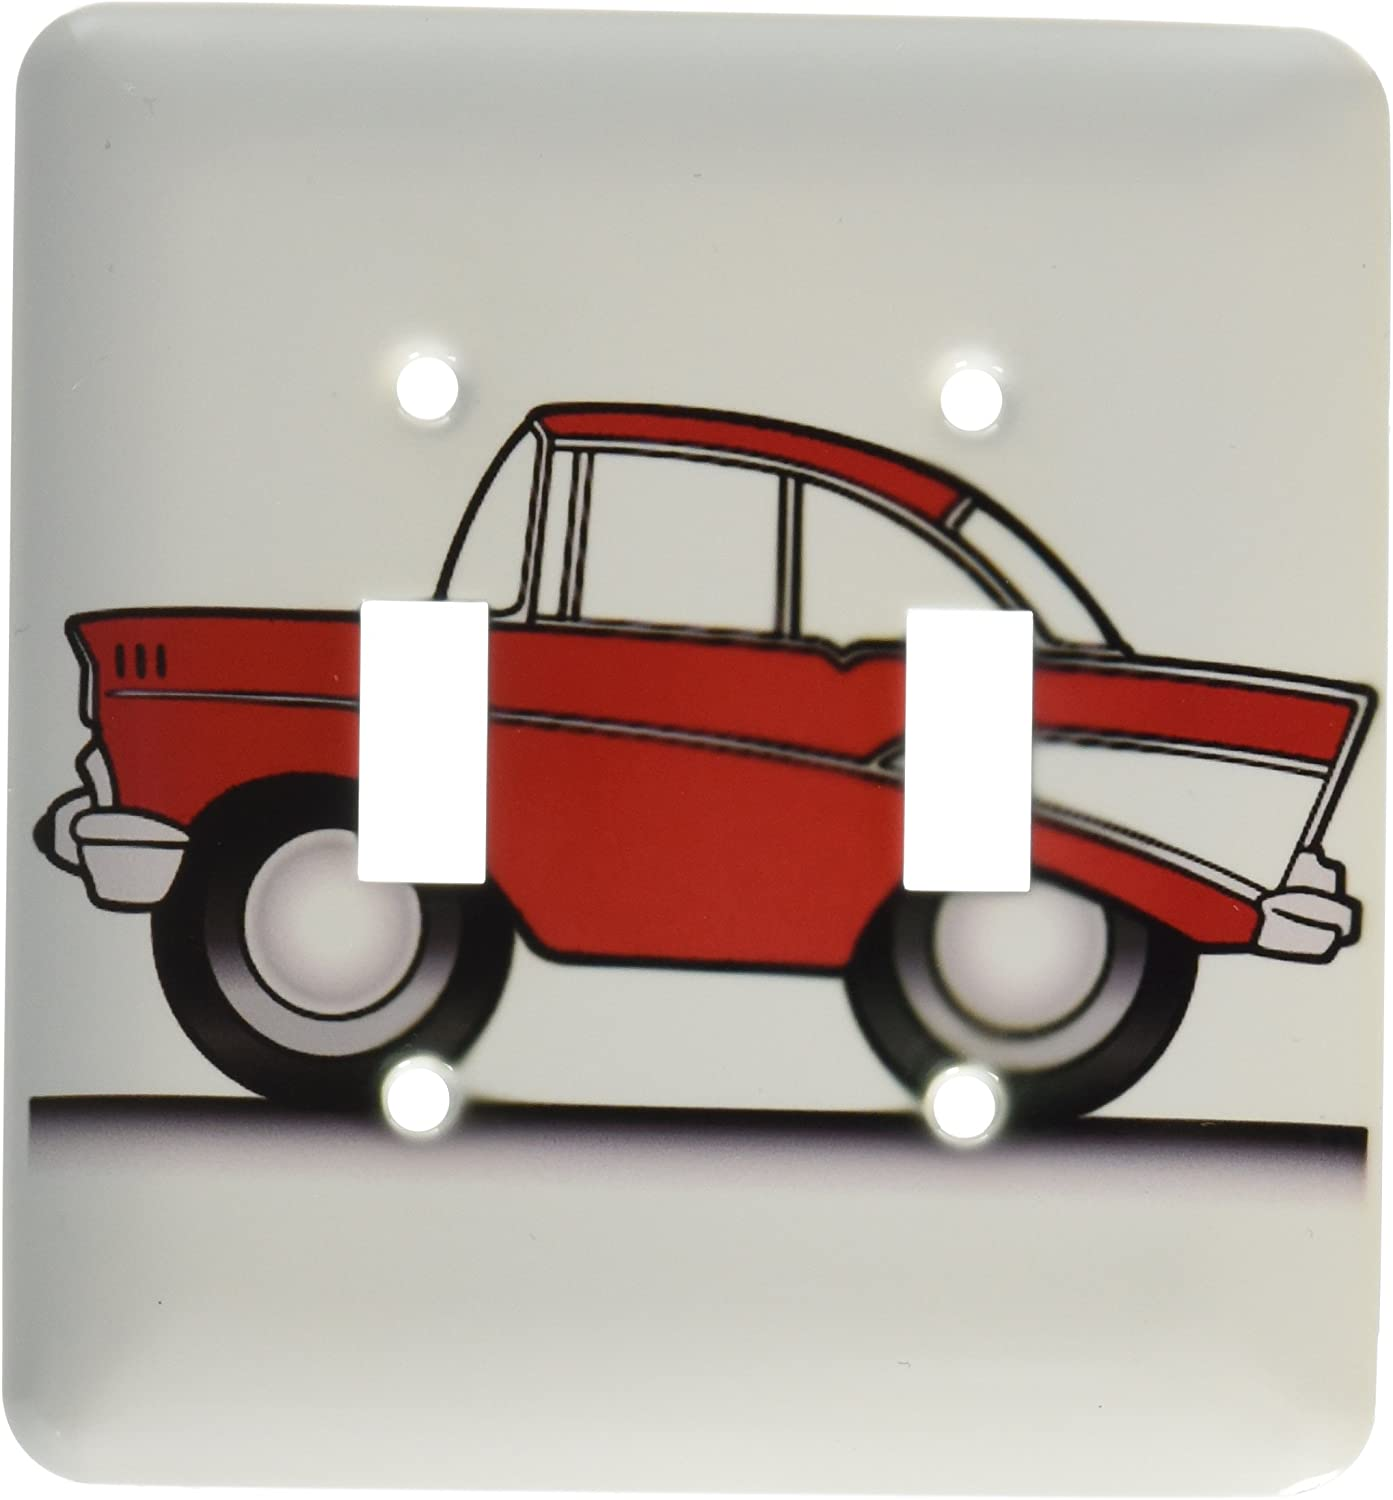 3drose Lsp 81023 2 Crazy Hot Rod Red 57 Trichev Cartoon Style On The Pavement Double Toggle Switch Switch Plates